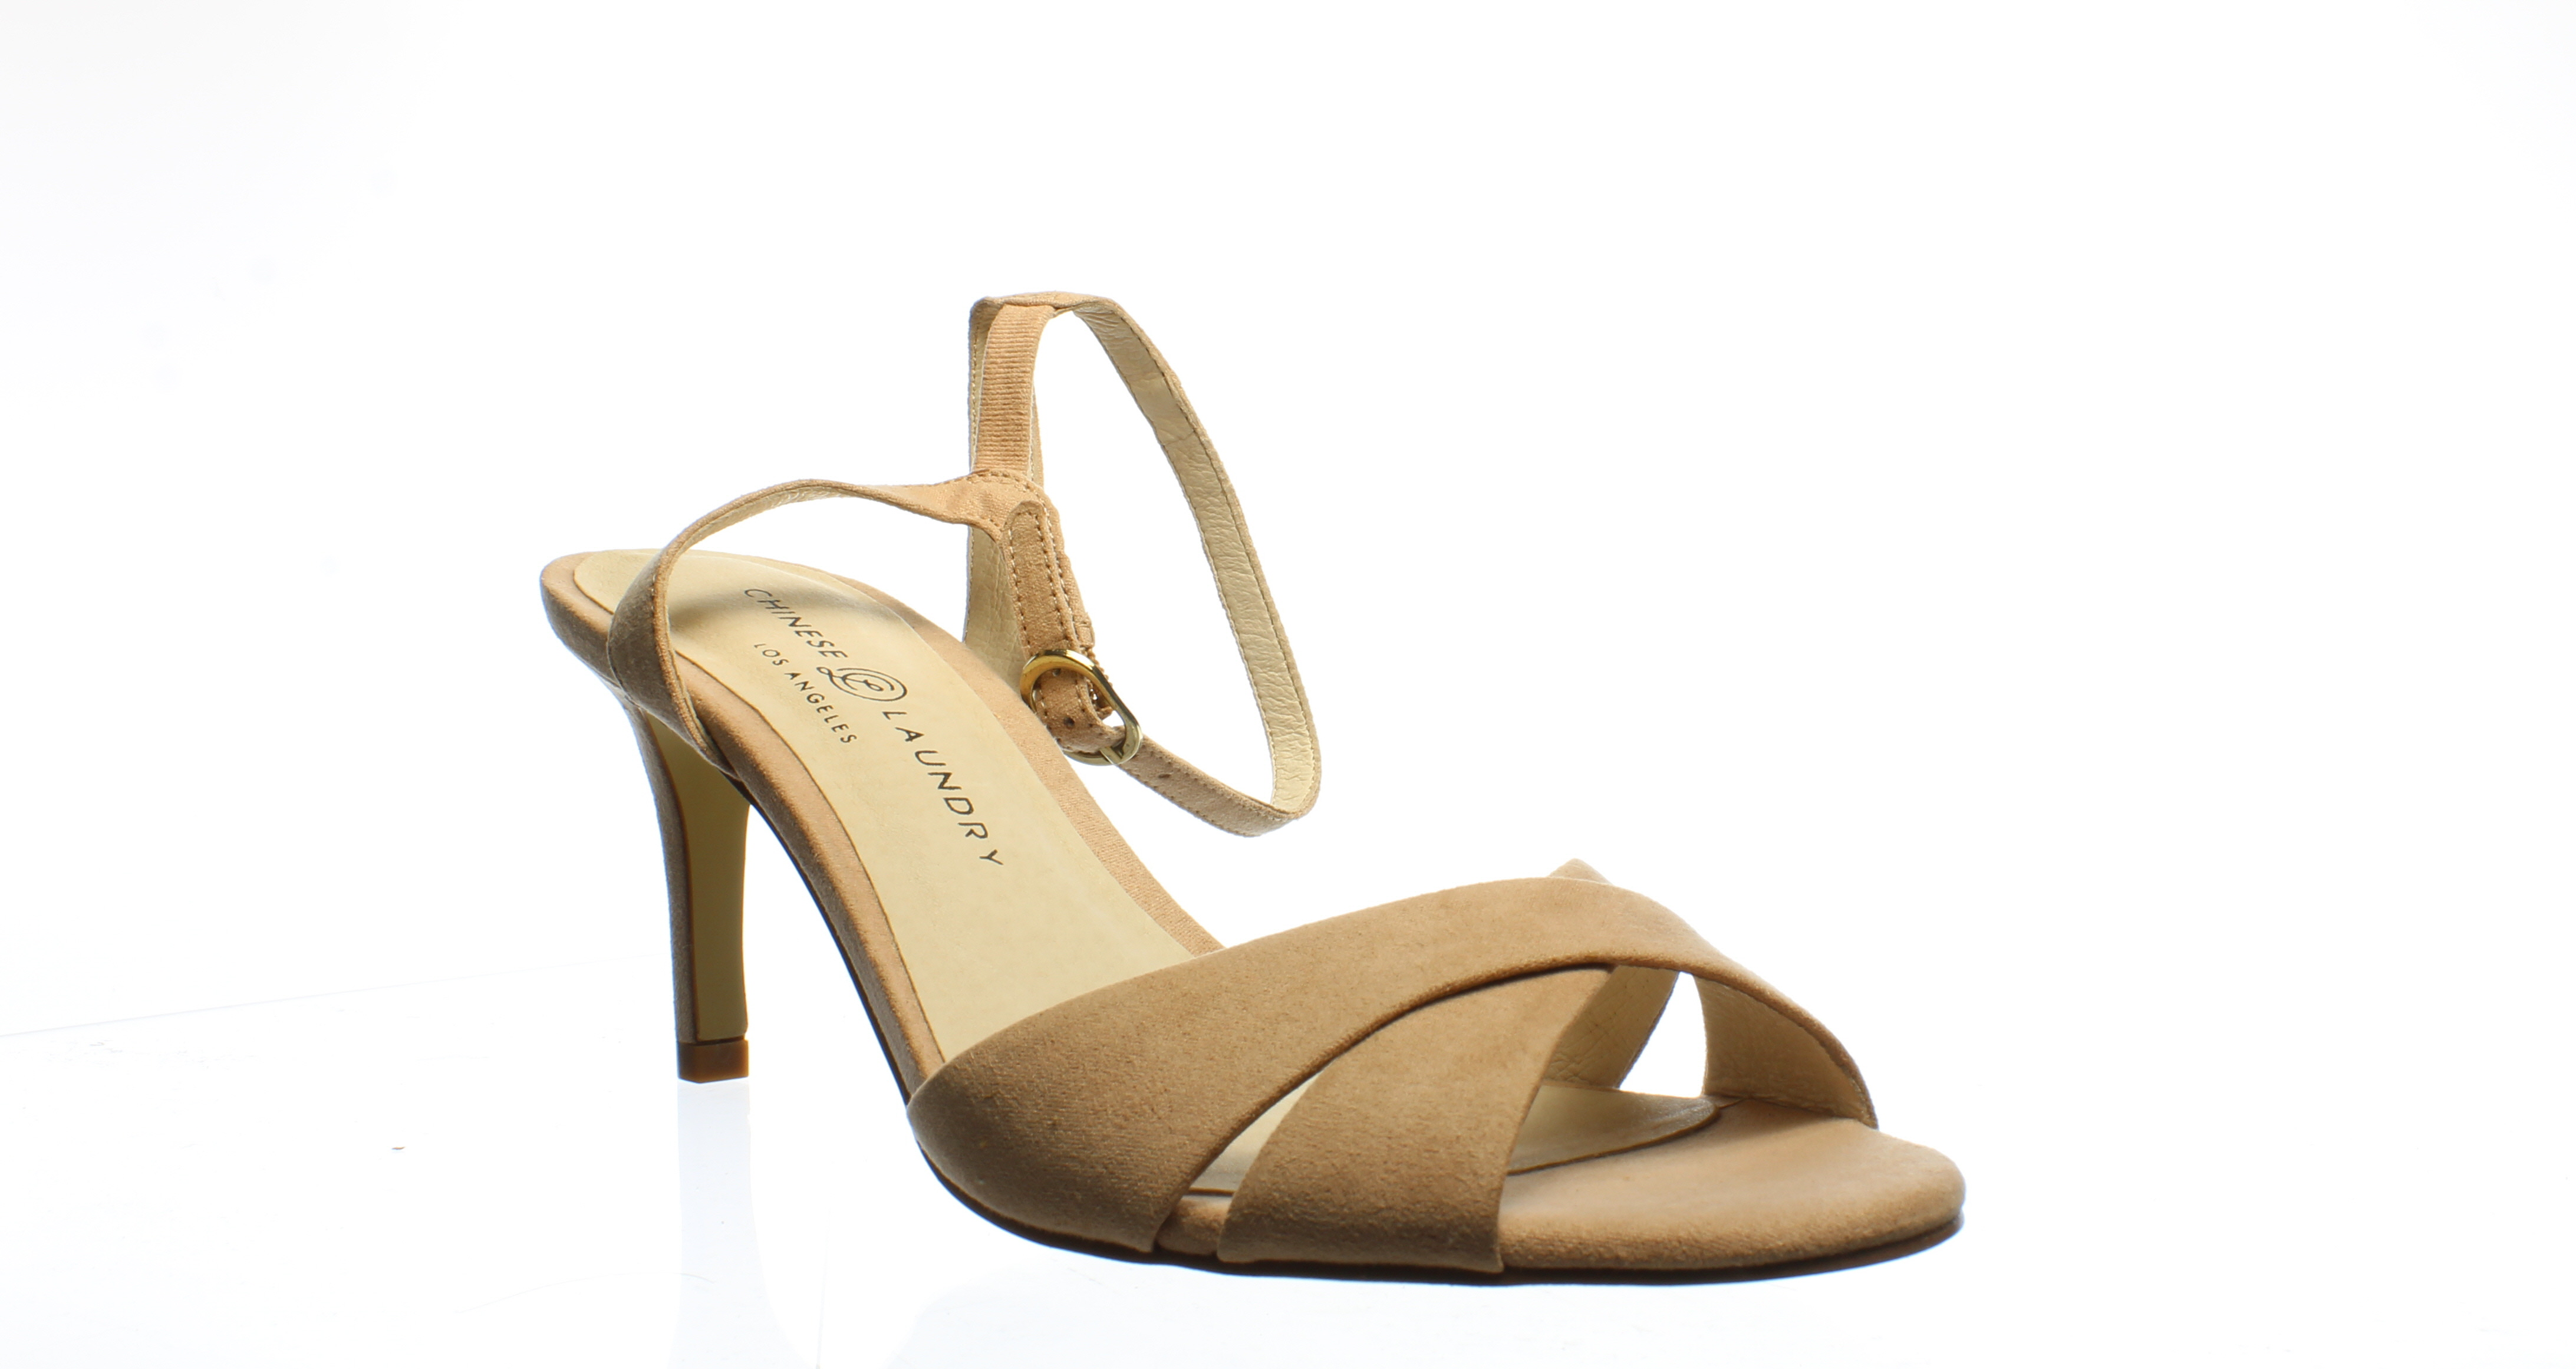 Chinese Laundry Womens Aced Dark Nude Ankle Strap Heels